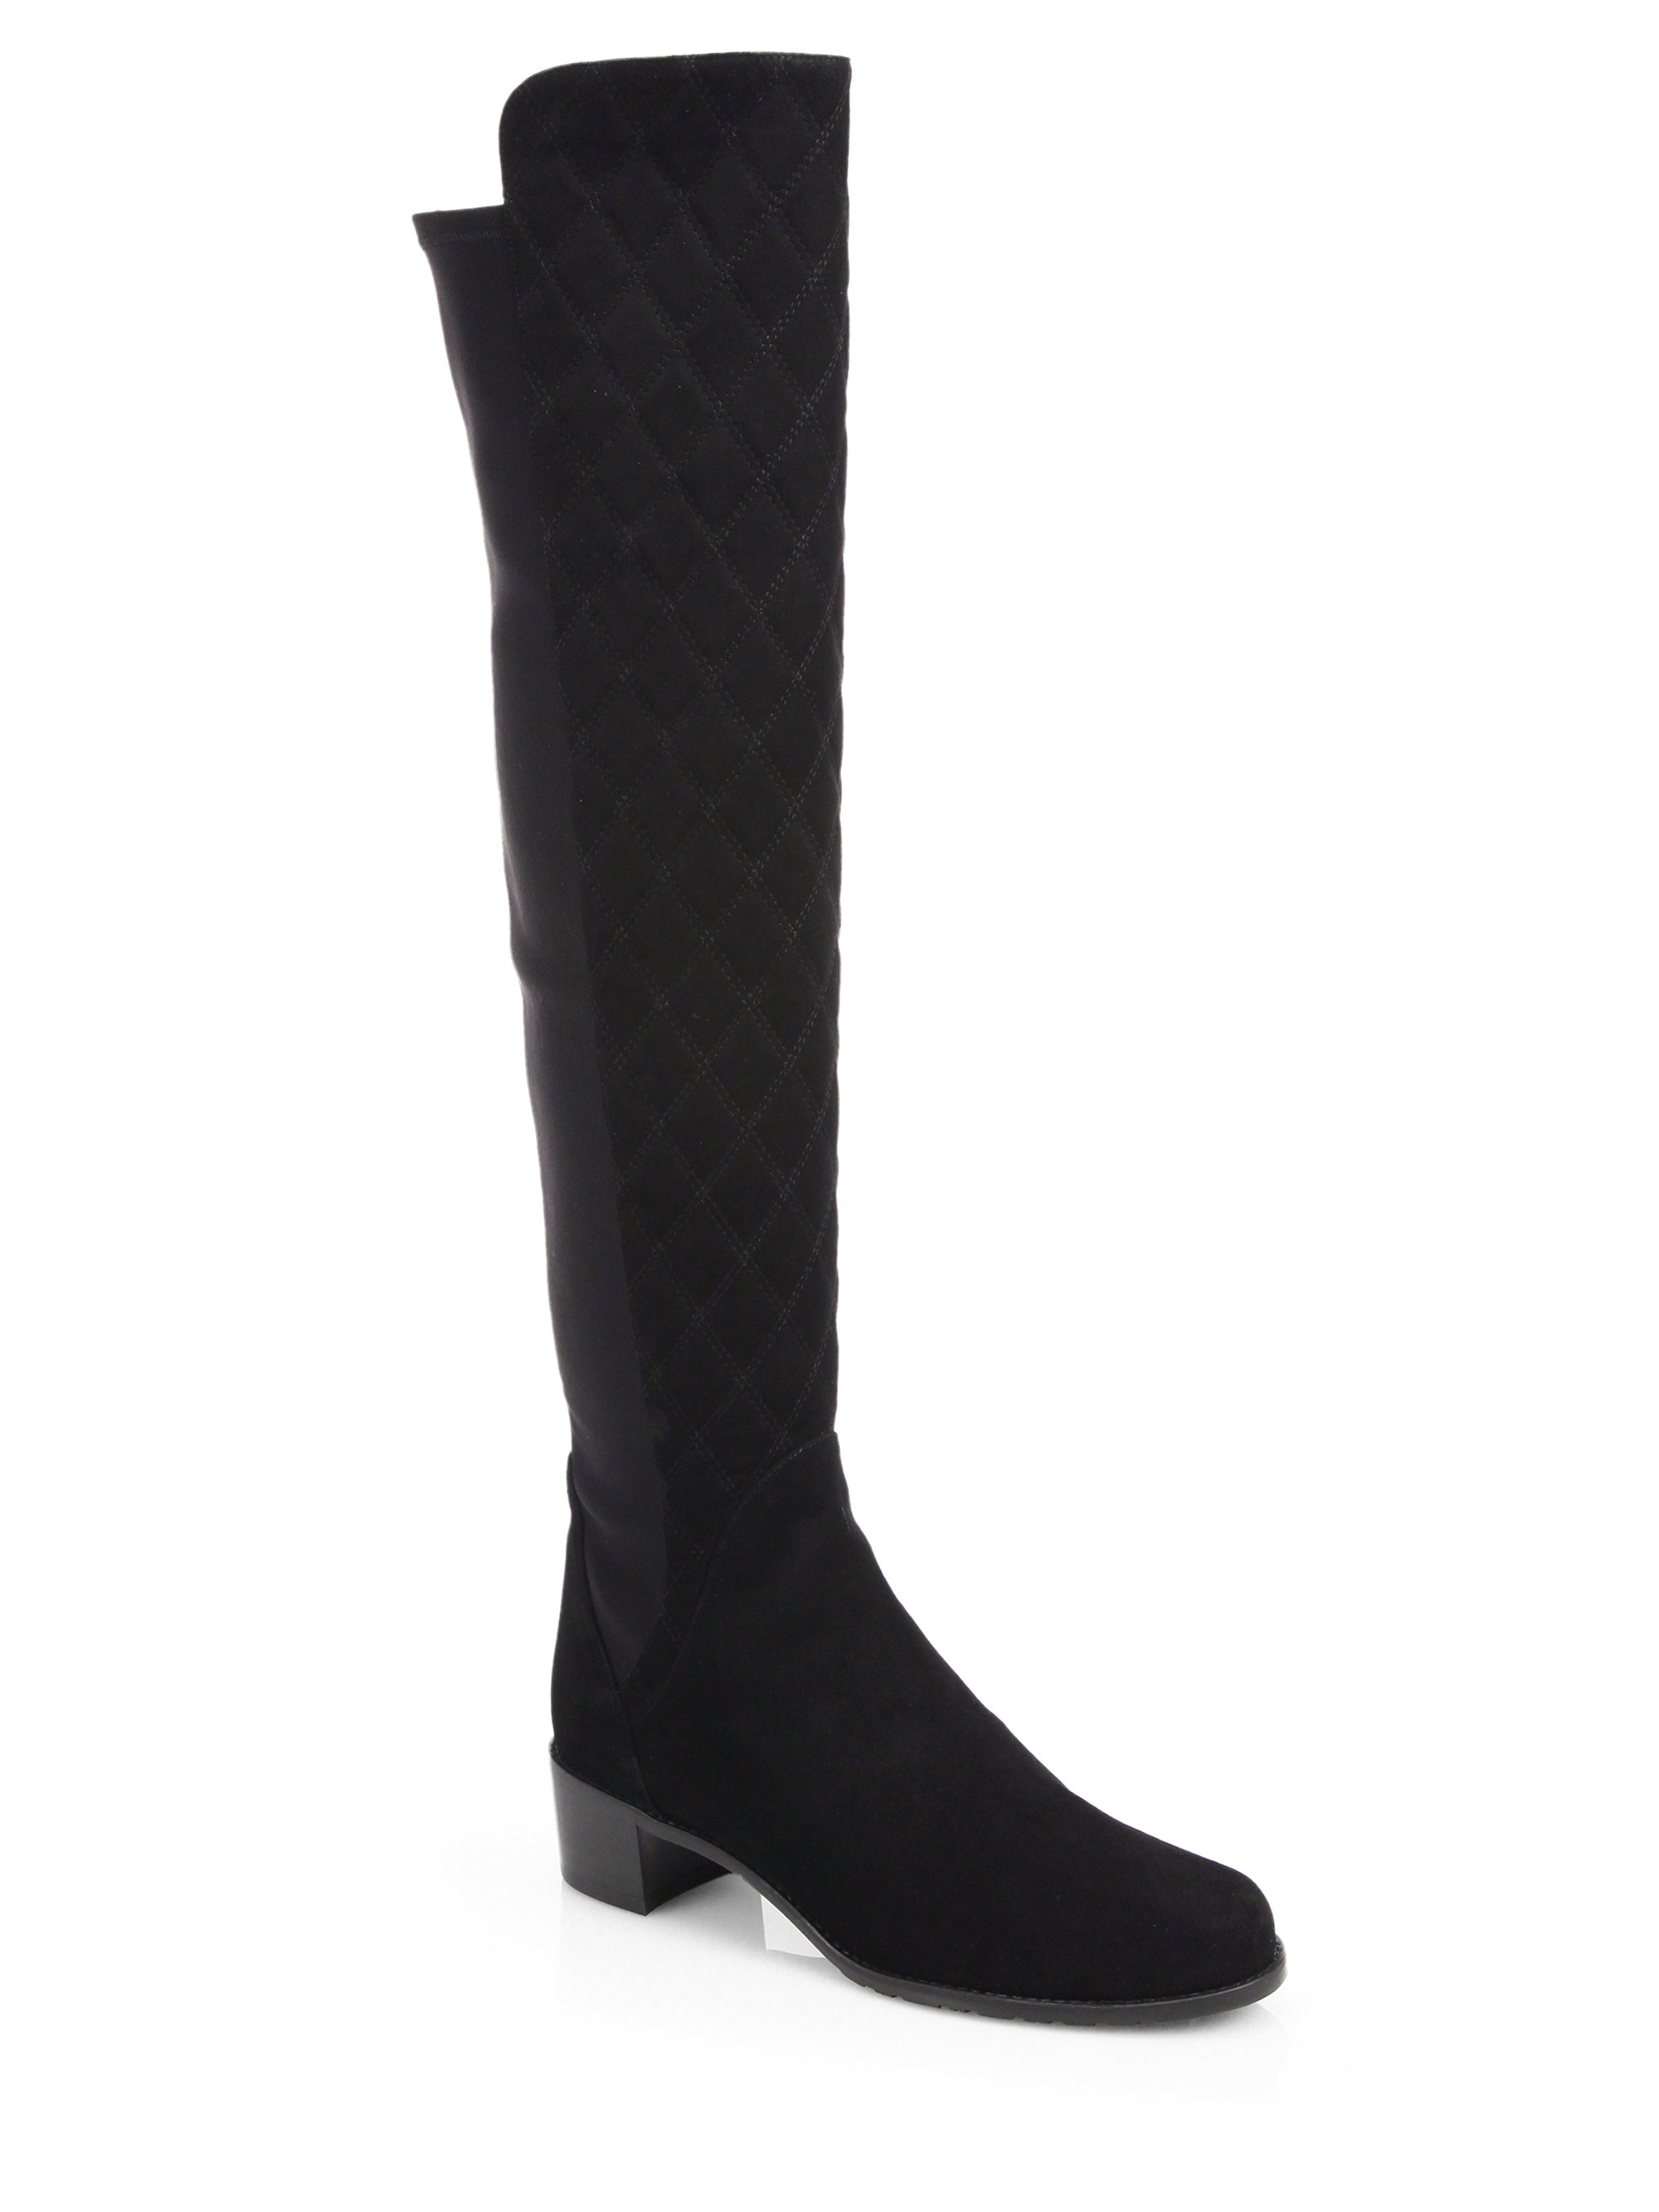 stuart weitzman quiltoga suede knee high boots in black lyst